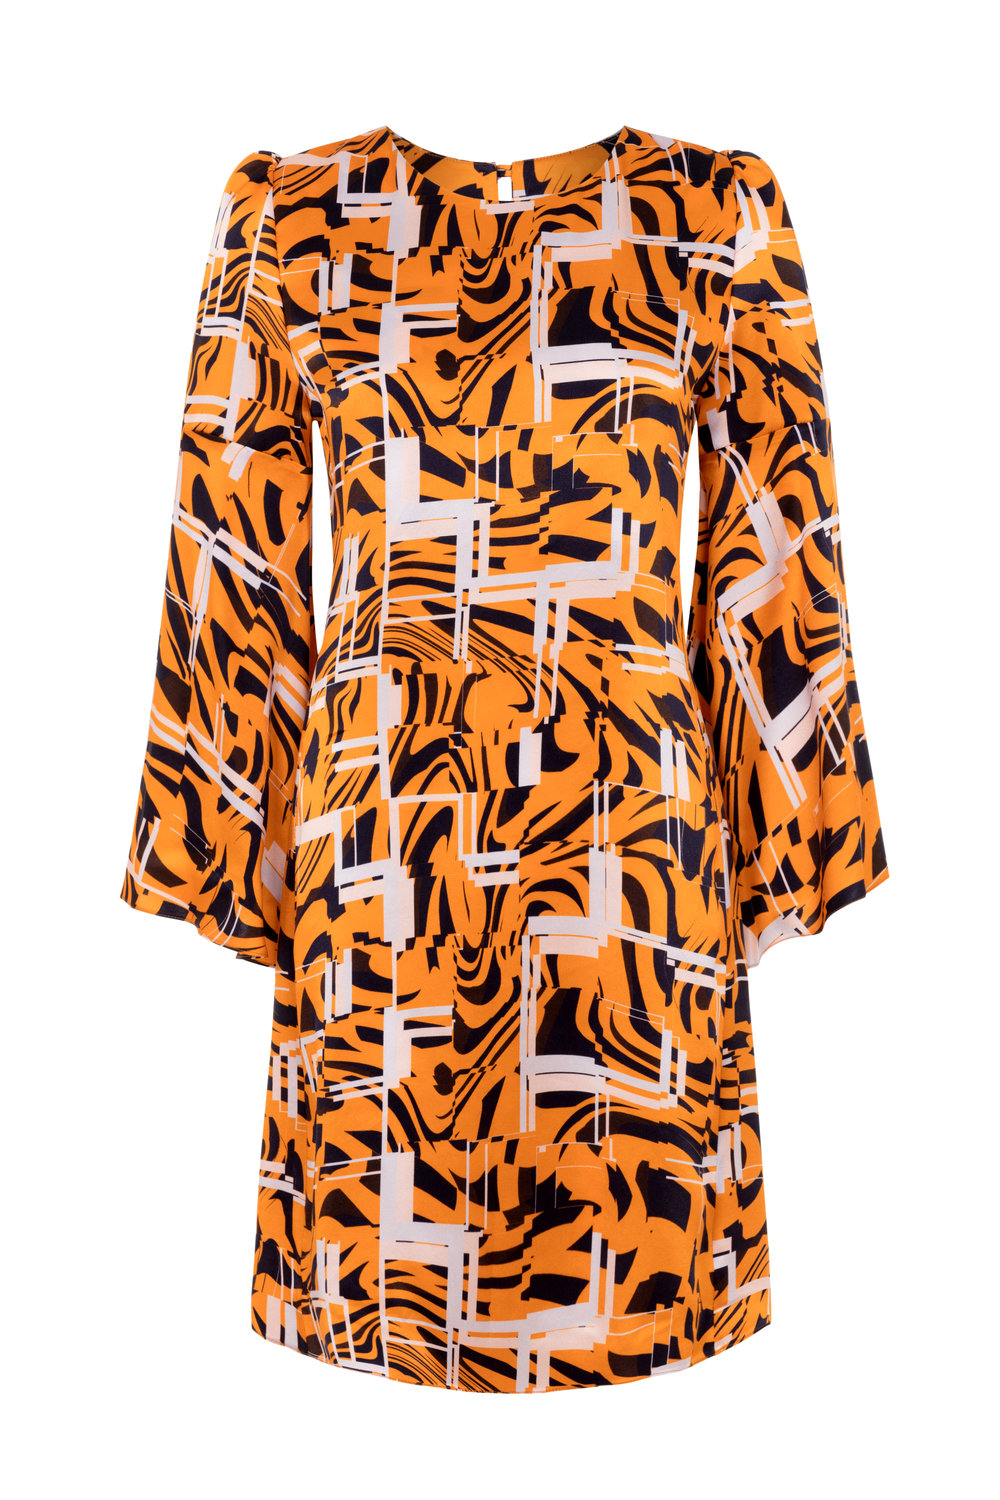 GEORGIE TIGER LINES PRINT DRESS